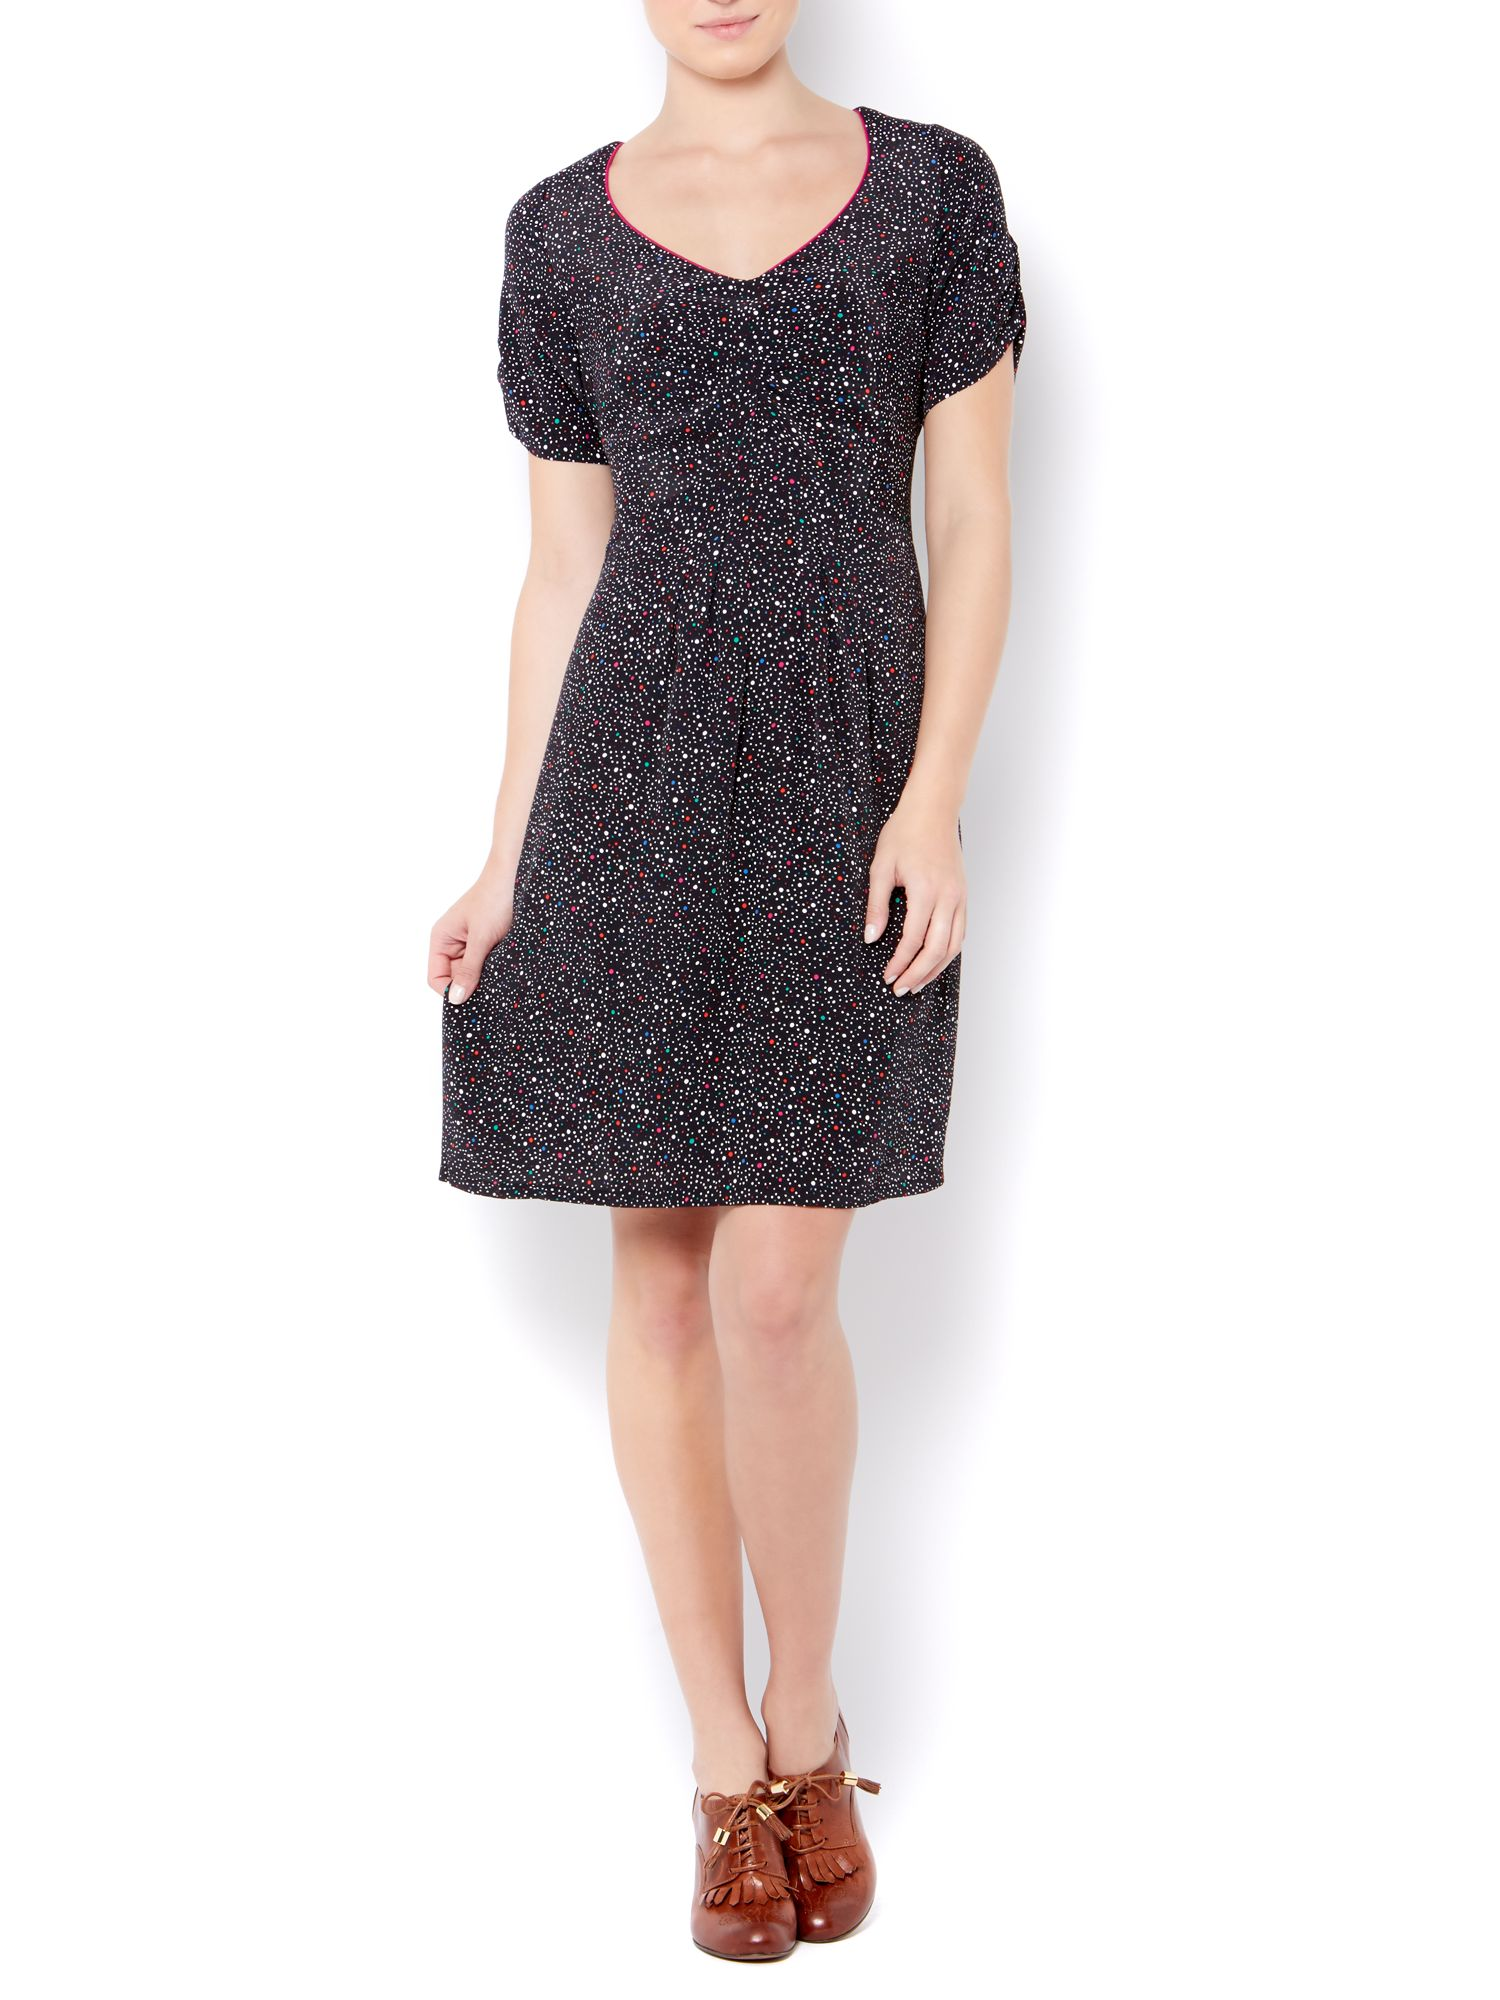 Ladies spot print dress